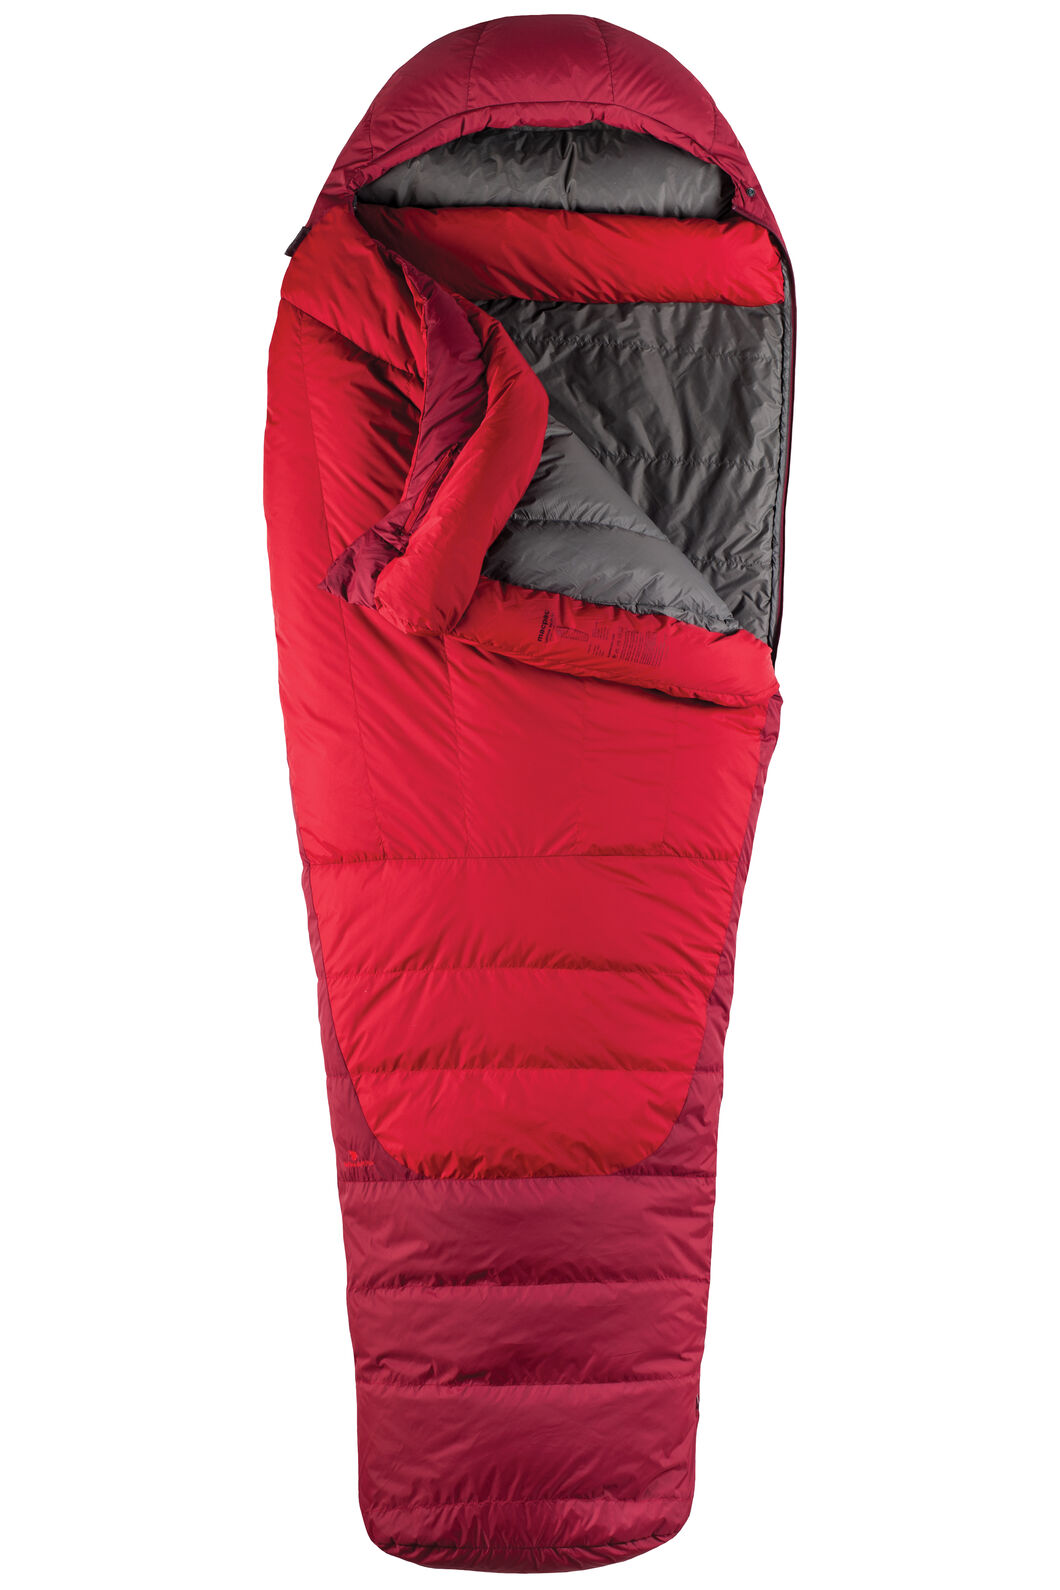 Latitude XP Goose Down 700 Sleeping Bag - Extra Large, Chilli, hi-res